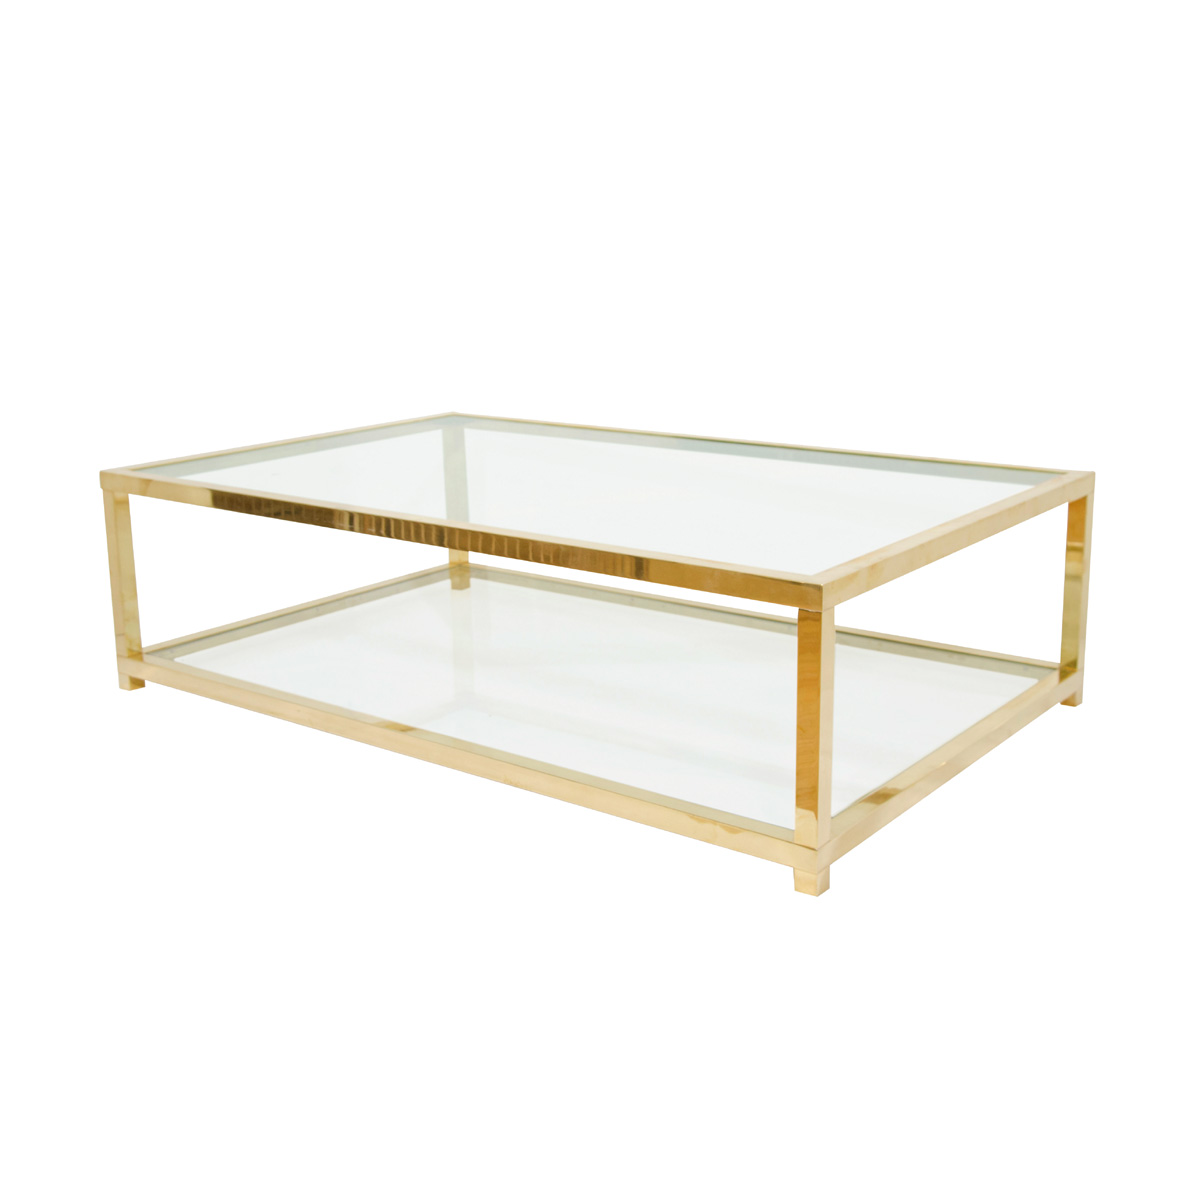 Two tiered brass and glass coffee table coffee tables john salibello Coffee tables glass